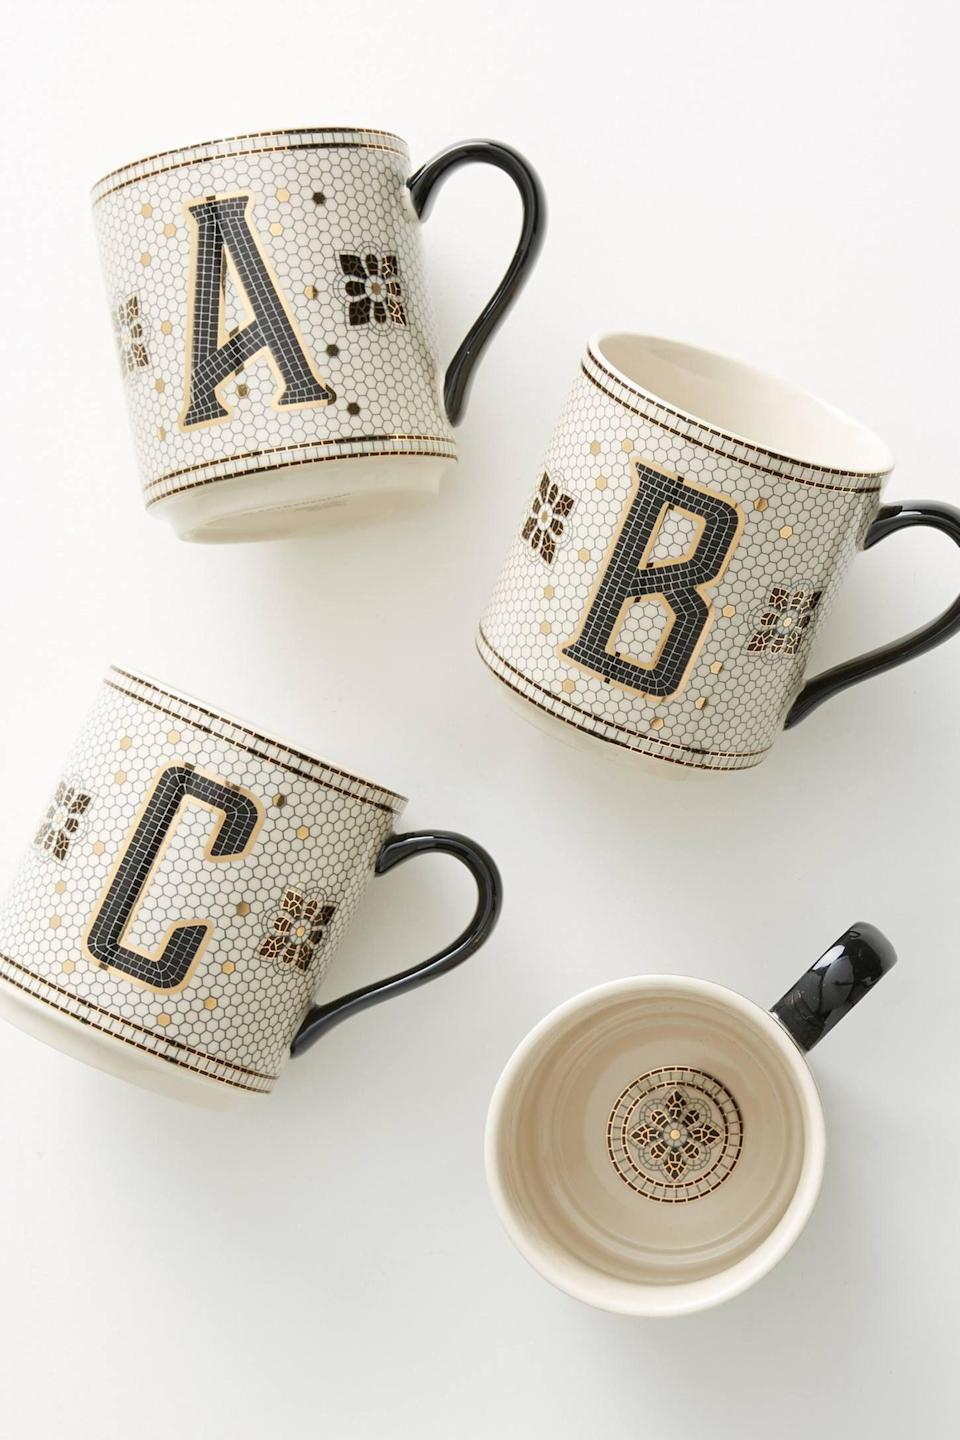 "<p><strong>Anthropologie</strong></p><p>anthropologie.com</p><p><strong>$10.00</strong></p><p><a href=""https://go.redirectingat.com?id=74968X1596630&url=https%3A%2F%2Fwww.anthropologie.com%2Fshop%2Ftiled-margot-monogram-mug&sref=https%3A%2F%2Fwww.housebeautiful.com%2Fshopping%2Fg1543%2Fpersonalized-gifts%2F"" rel=""nofollow noopener"" target=""_blank"" data-ylk=""slk:BUY NOW"" class=""link rapid-noclick-resp"">BUY NOW</a></p><p>These monogram mugs have a cool bistro vibe, <em>and</em> they're a great affordable pick. </p>"